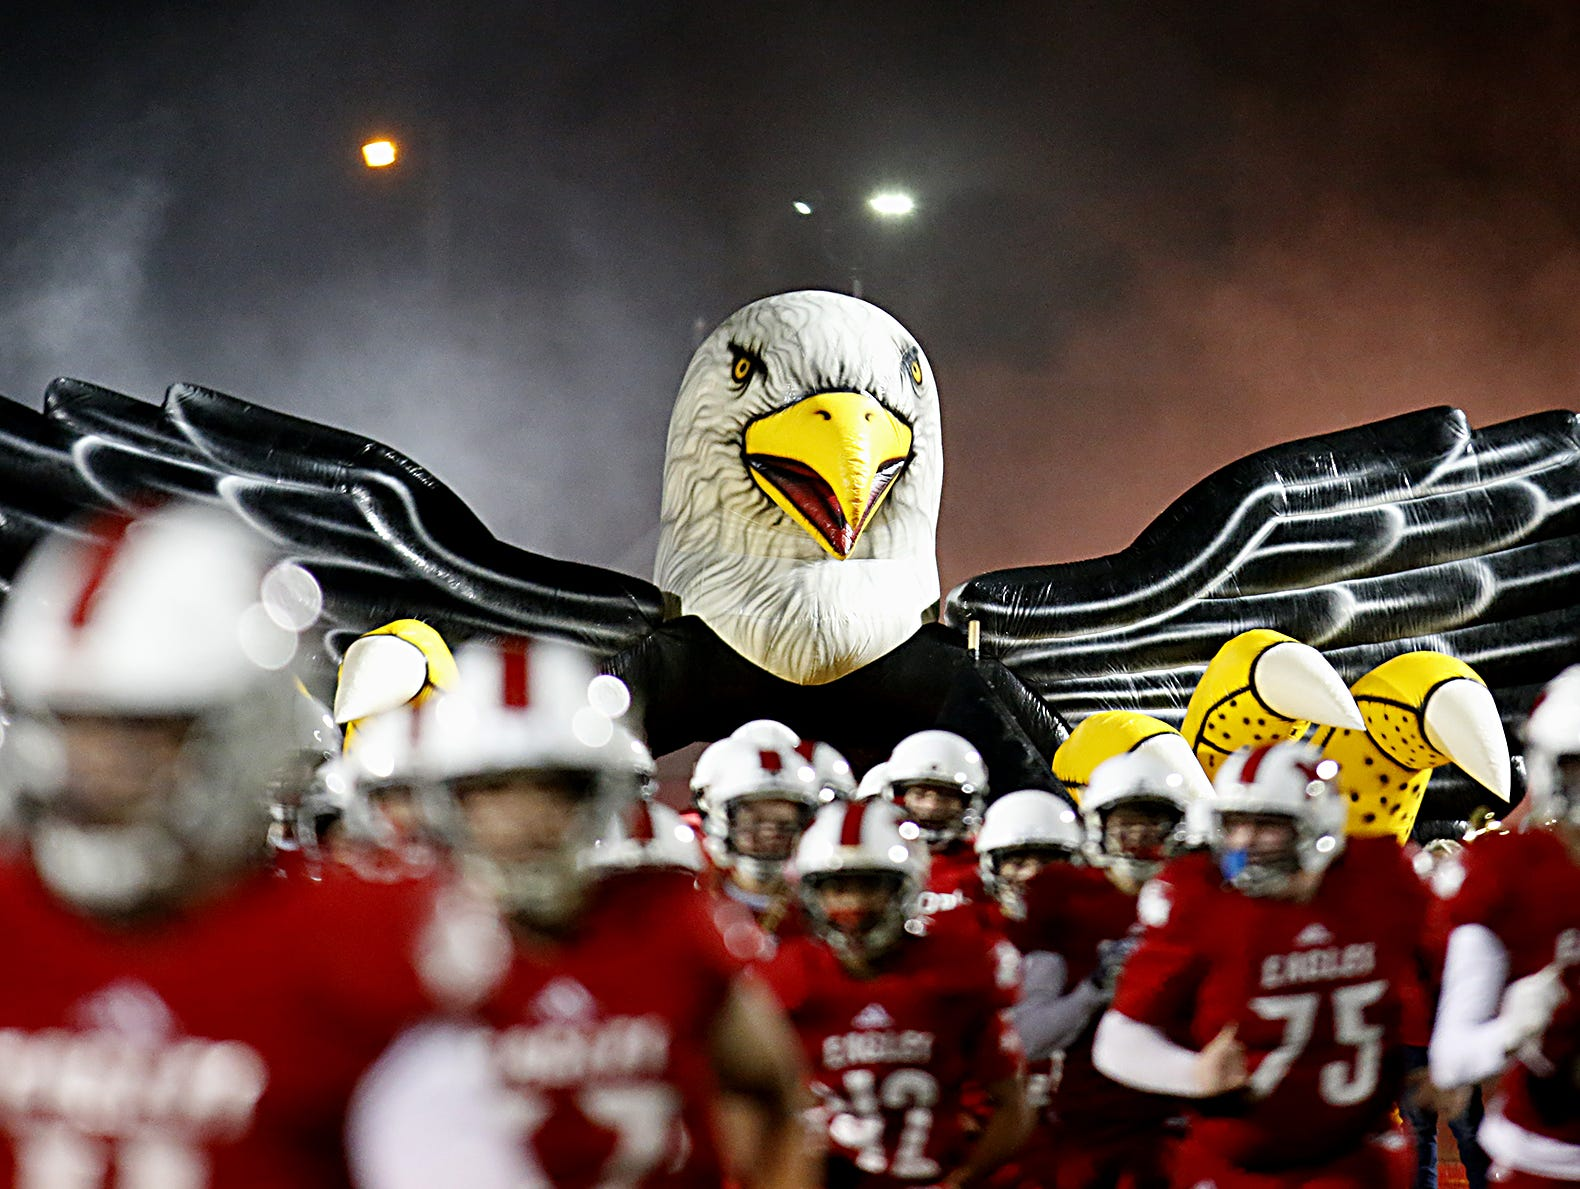 The Milford Eagles take the field for their Division I playoff game against Fairfield at Eagle Stadium in Milford Friday, Nov. 2, 2018.